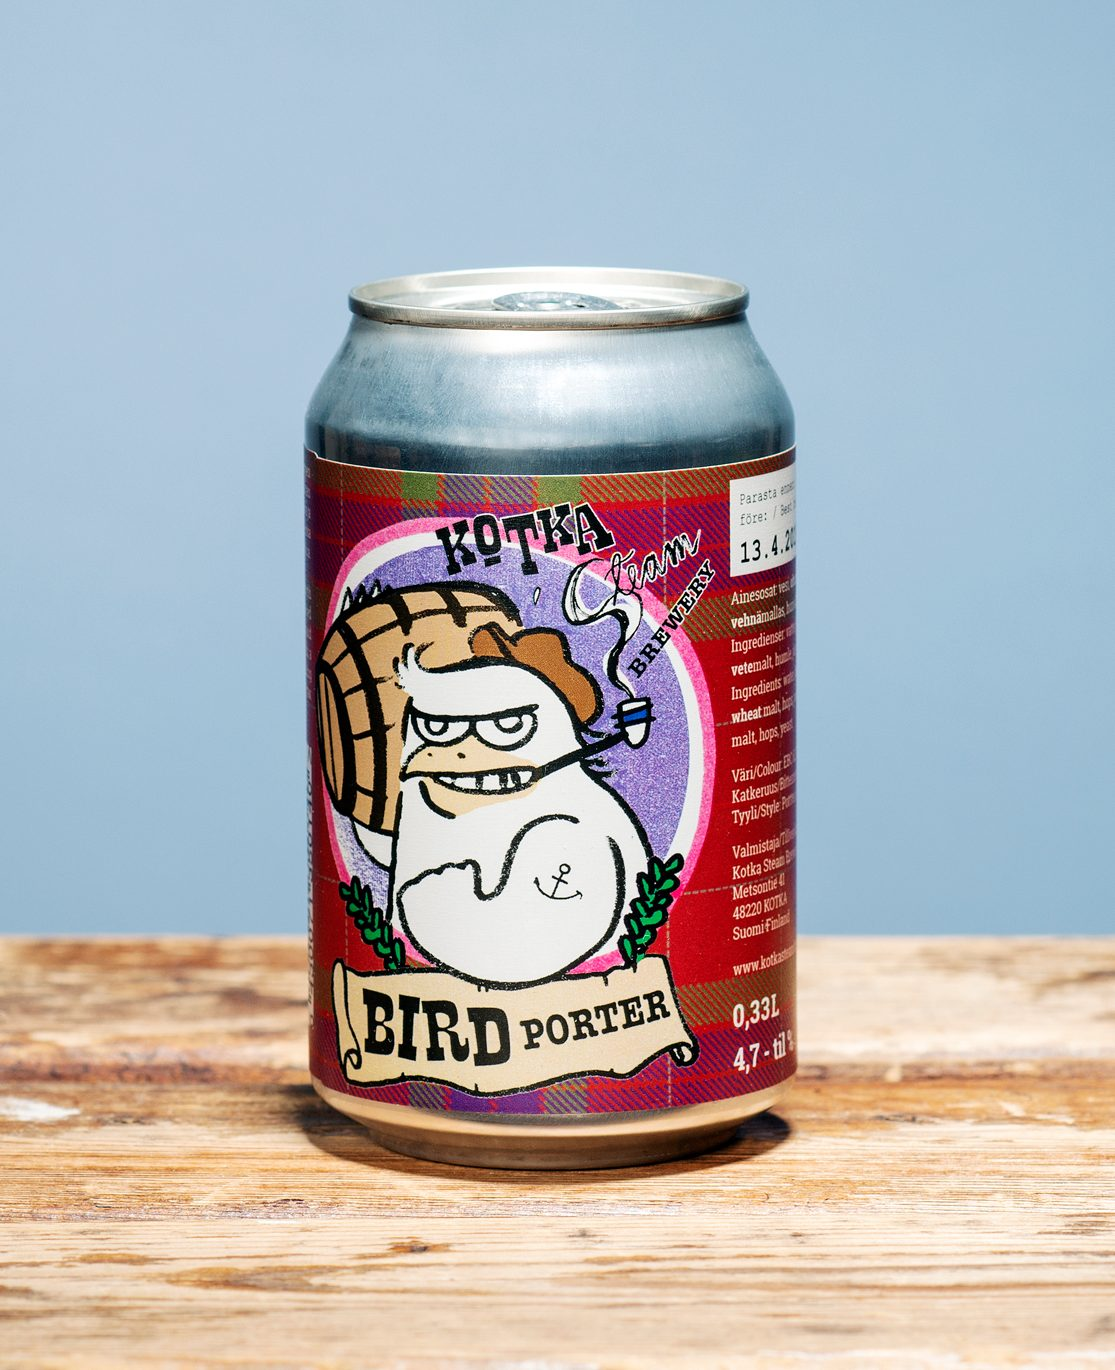 Kotka Steam Brewery - Bird Porter